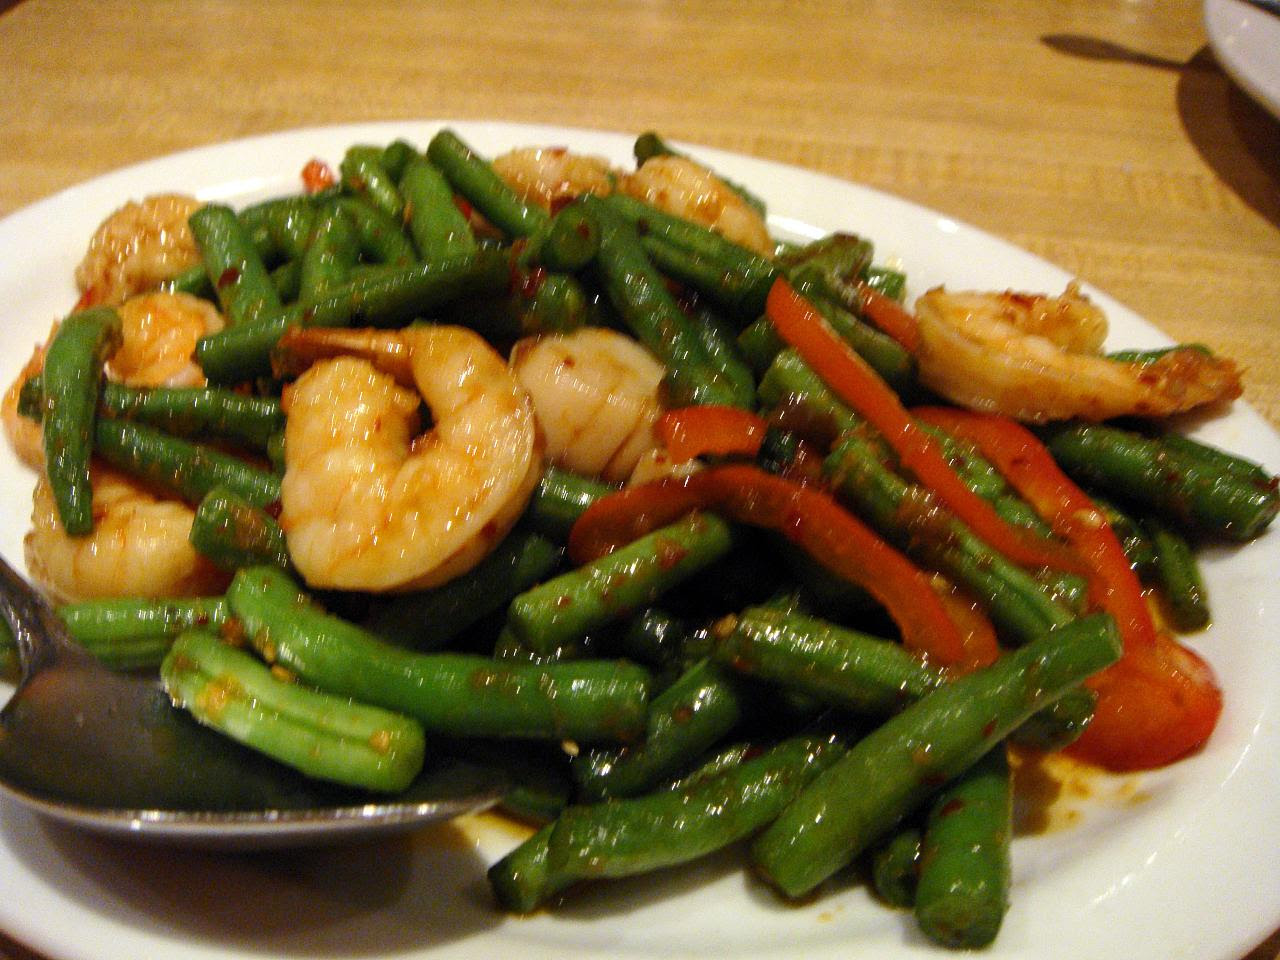 Spicy Green beans with shrimp and scallops